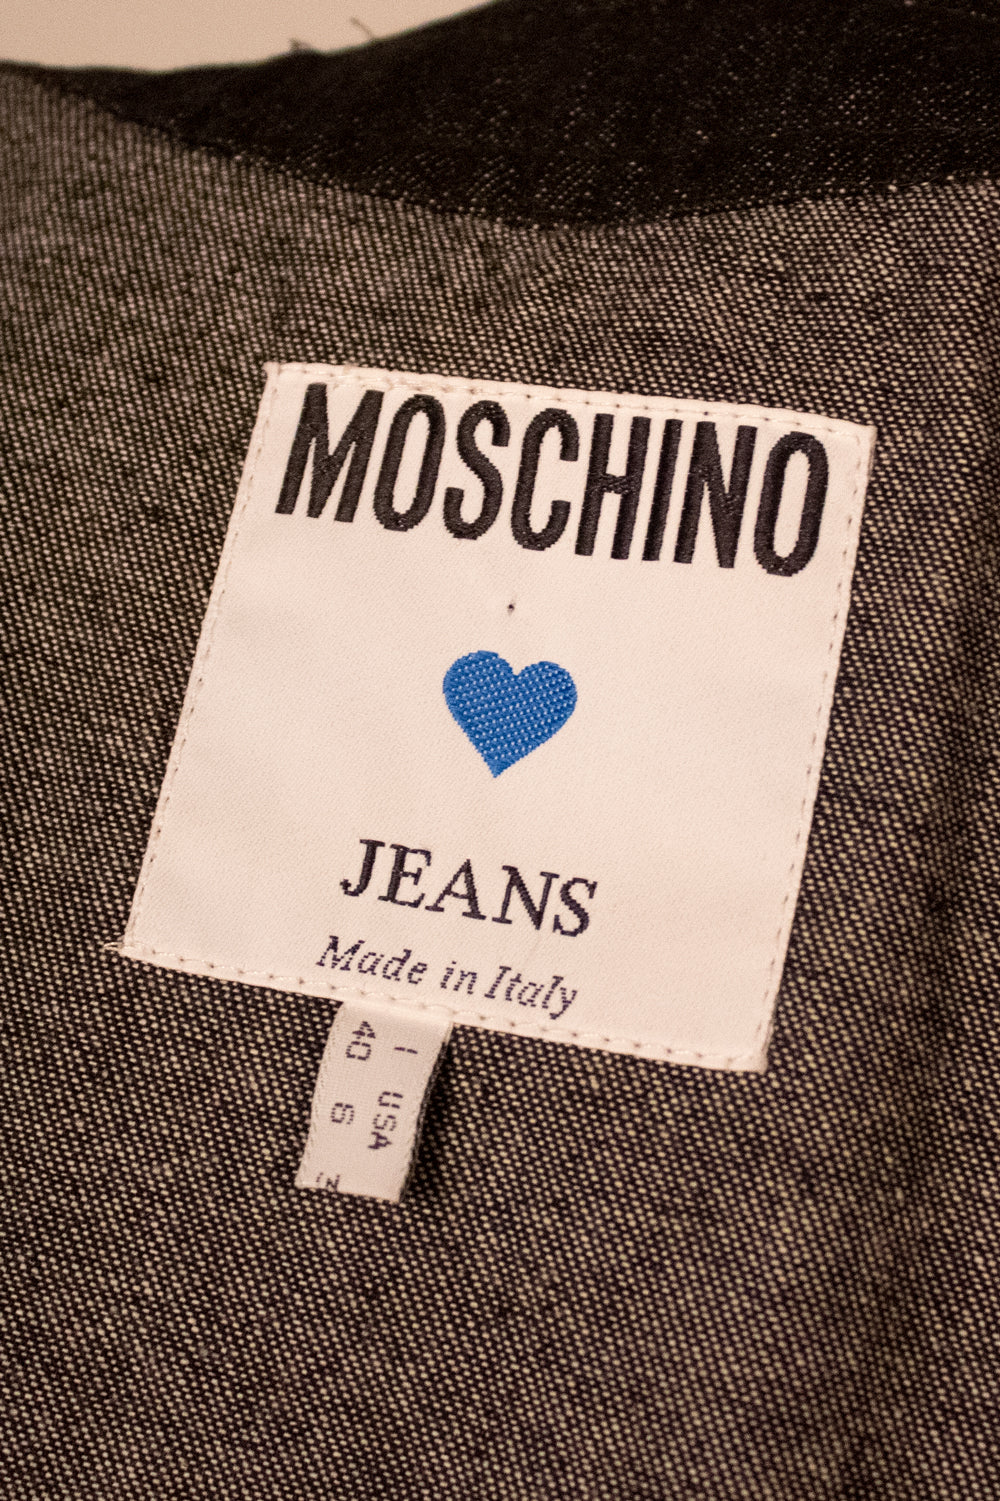 Moschino Jeans for Bergdorf Goodman shortsleeve denim jacket